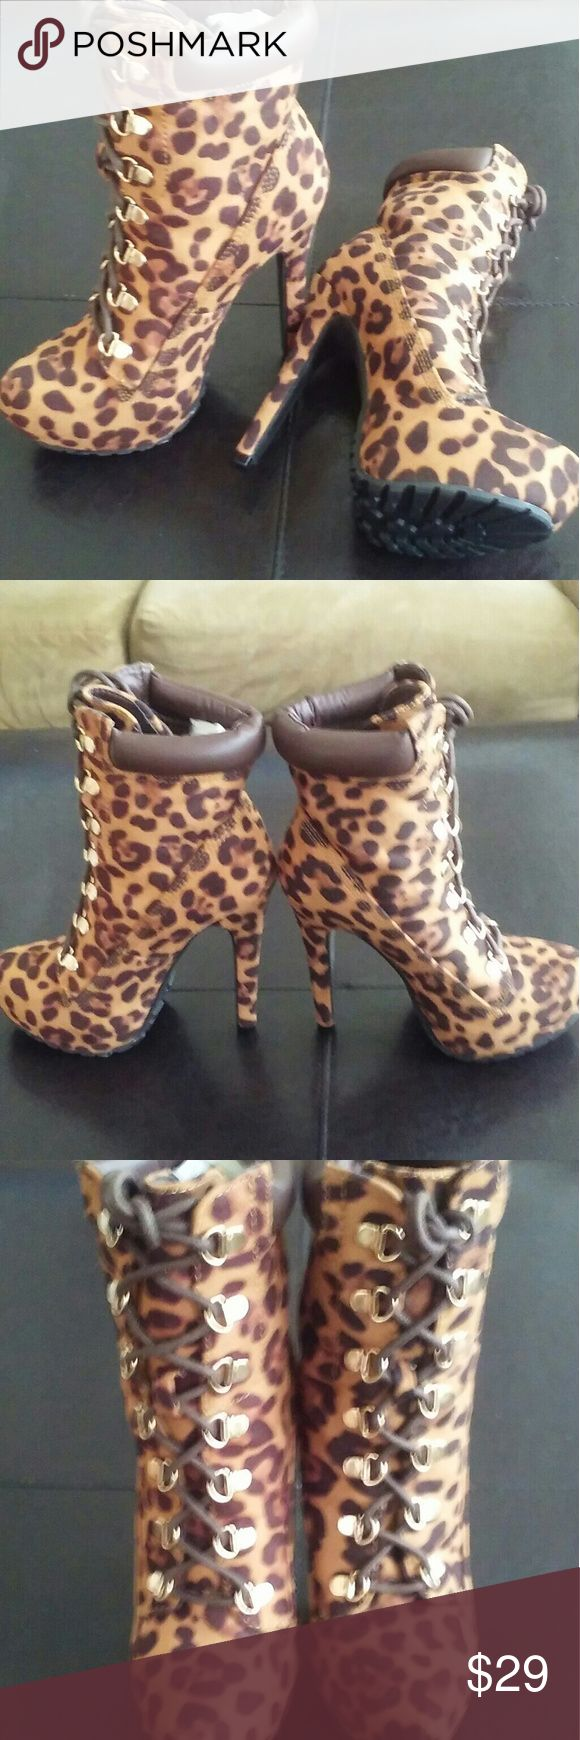 """Leopard Ankle boots Construction trend booties in faux suede / faux leather. The booties feature leopard print, sexy steep stiletto heel, animal print, gold hardware - D-rings, lace up clouser. Lug soles.   Details: heel 5-1/4"""", platform 1"""", the shoe runs narrow, high arch, will work for those who wear high heels regularly. New never worn. JustFab Shoes Ankle Boots & Booties"""